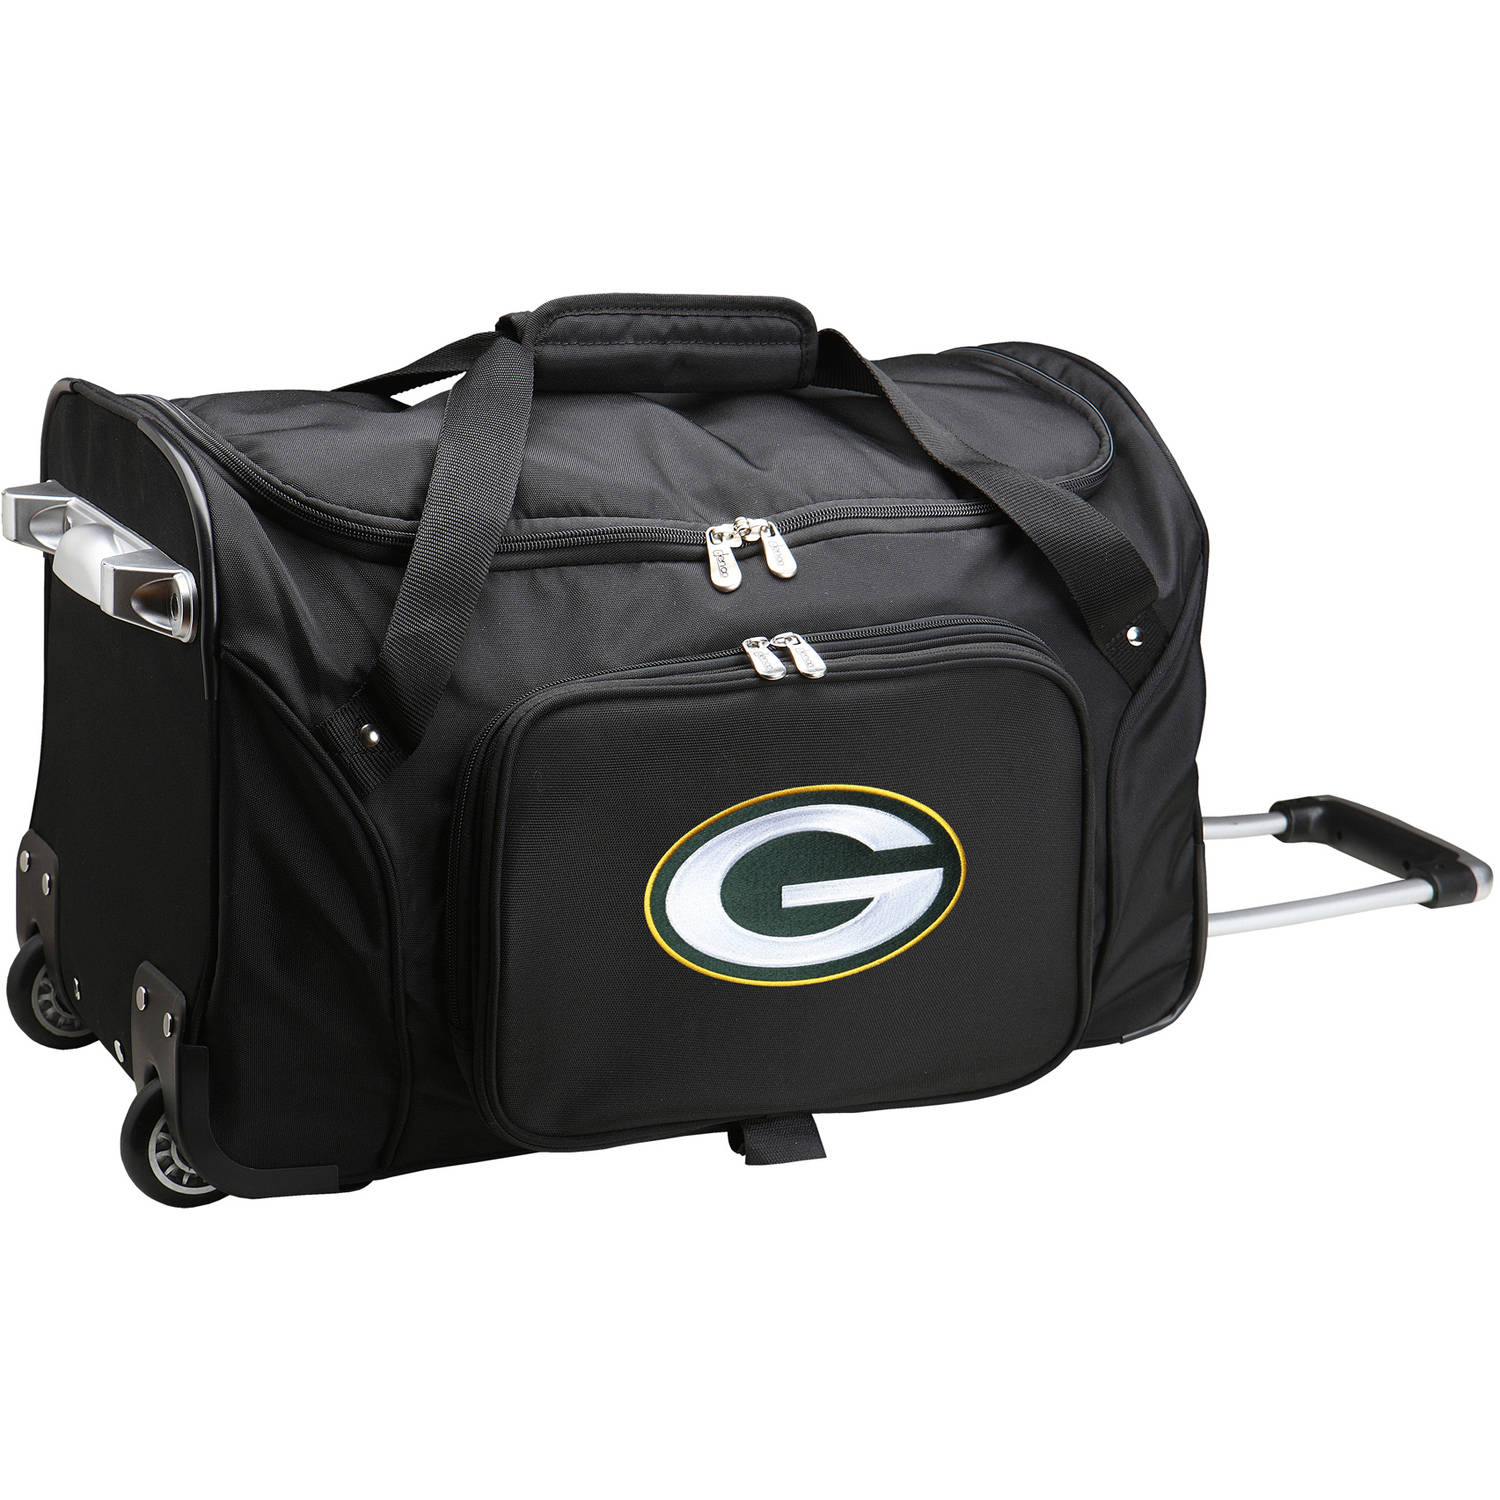 "Denco NFL 22"" Rolling Duffel, Green Bay Packers"